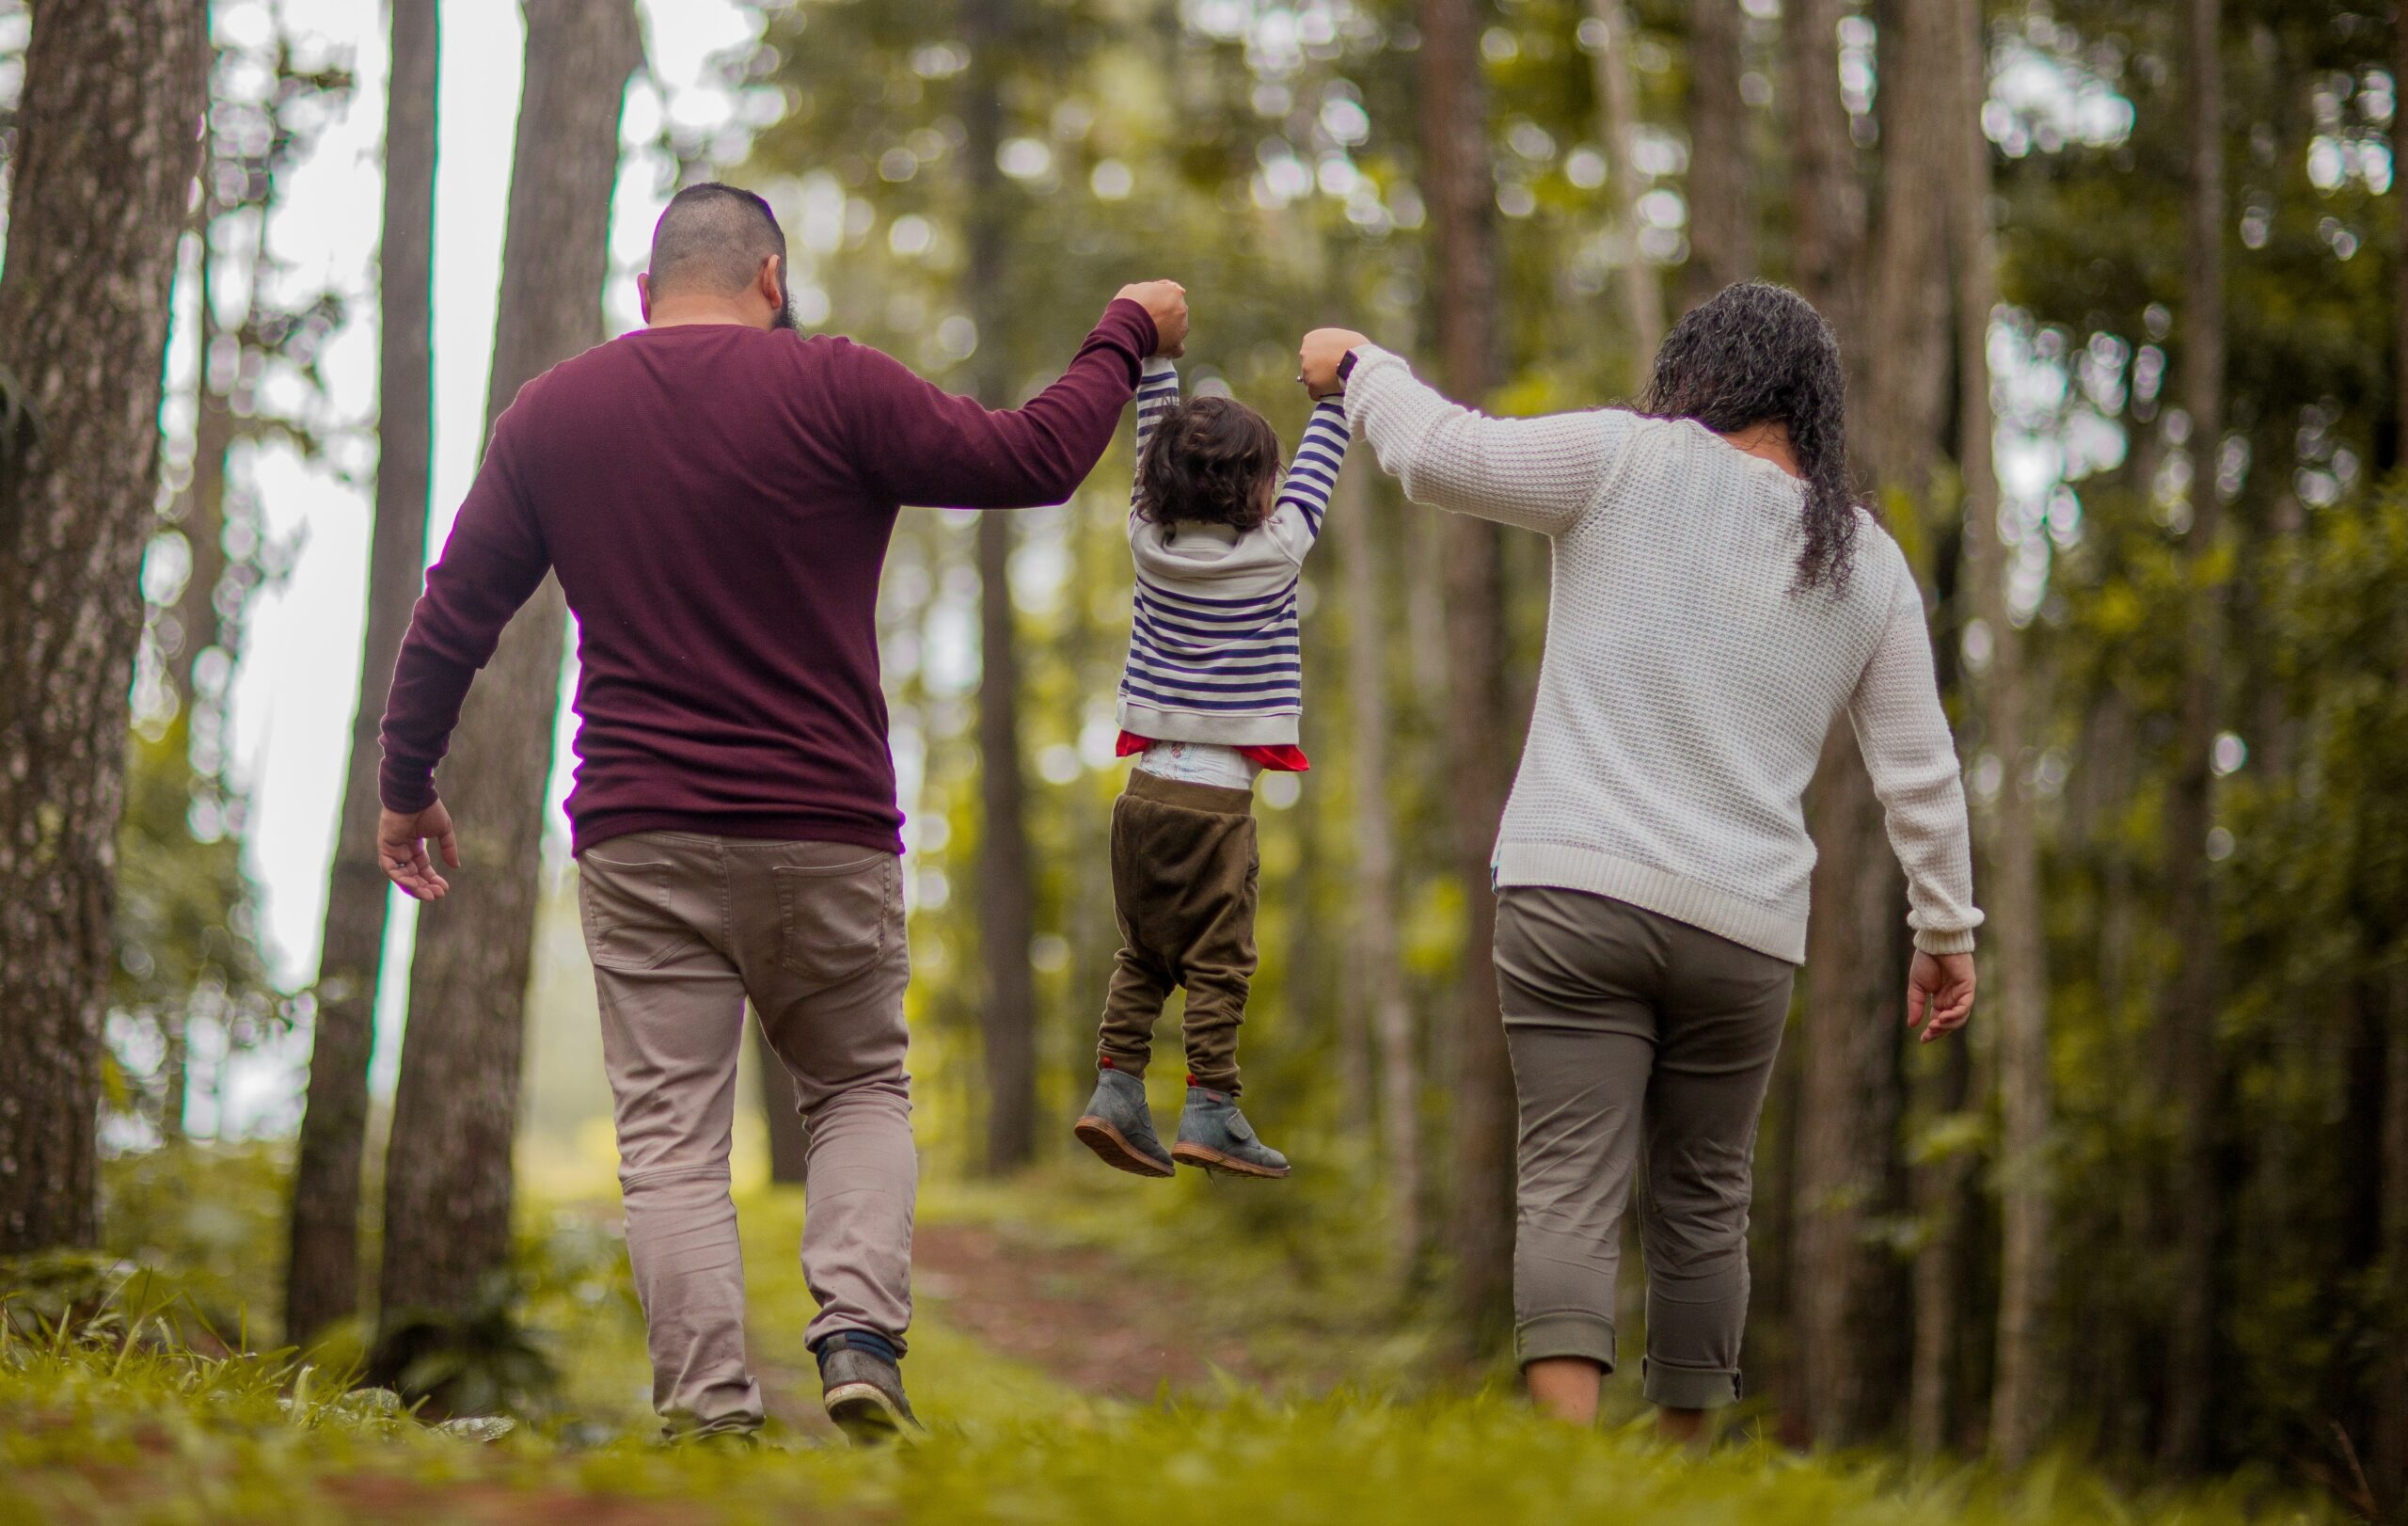 two adults and a young child walking in a forest while holding hands - sound walk